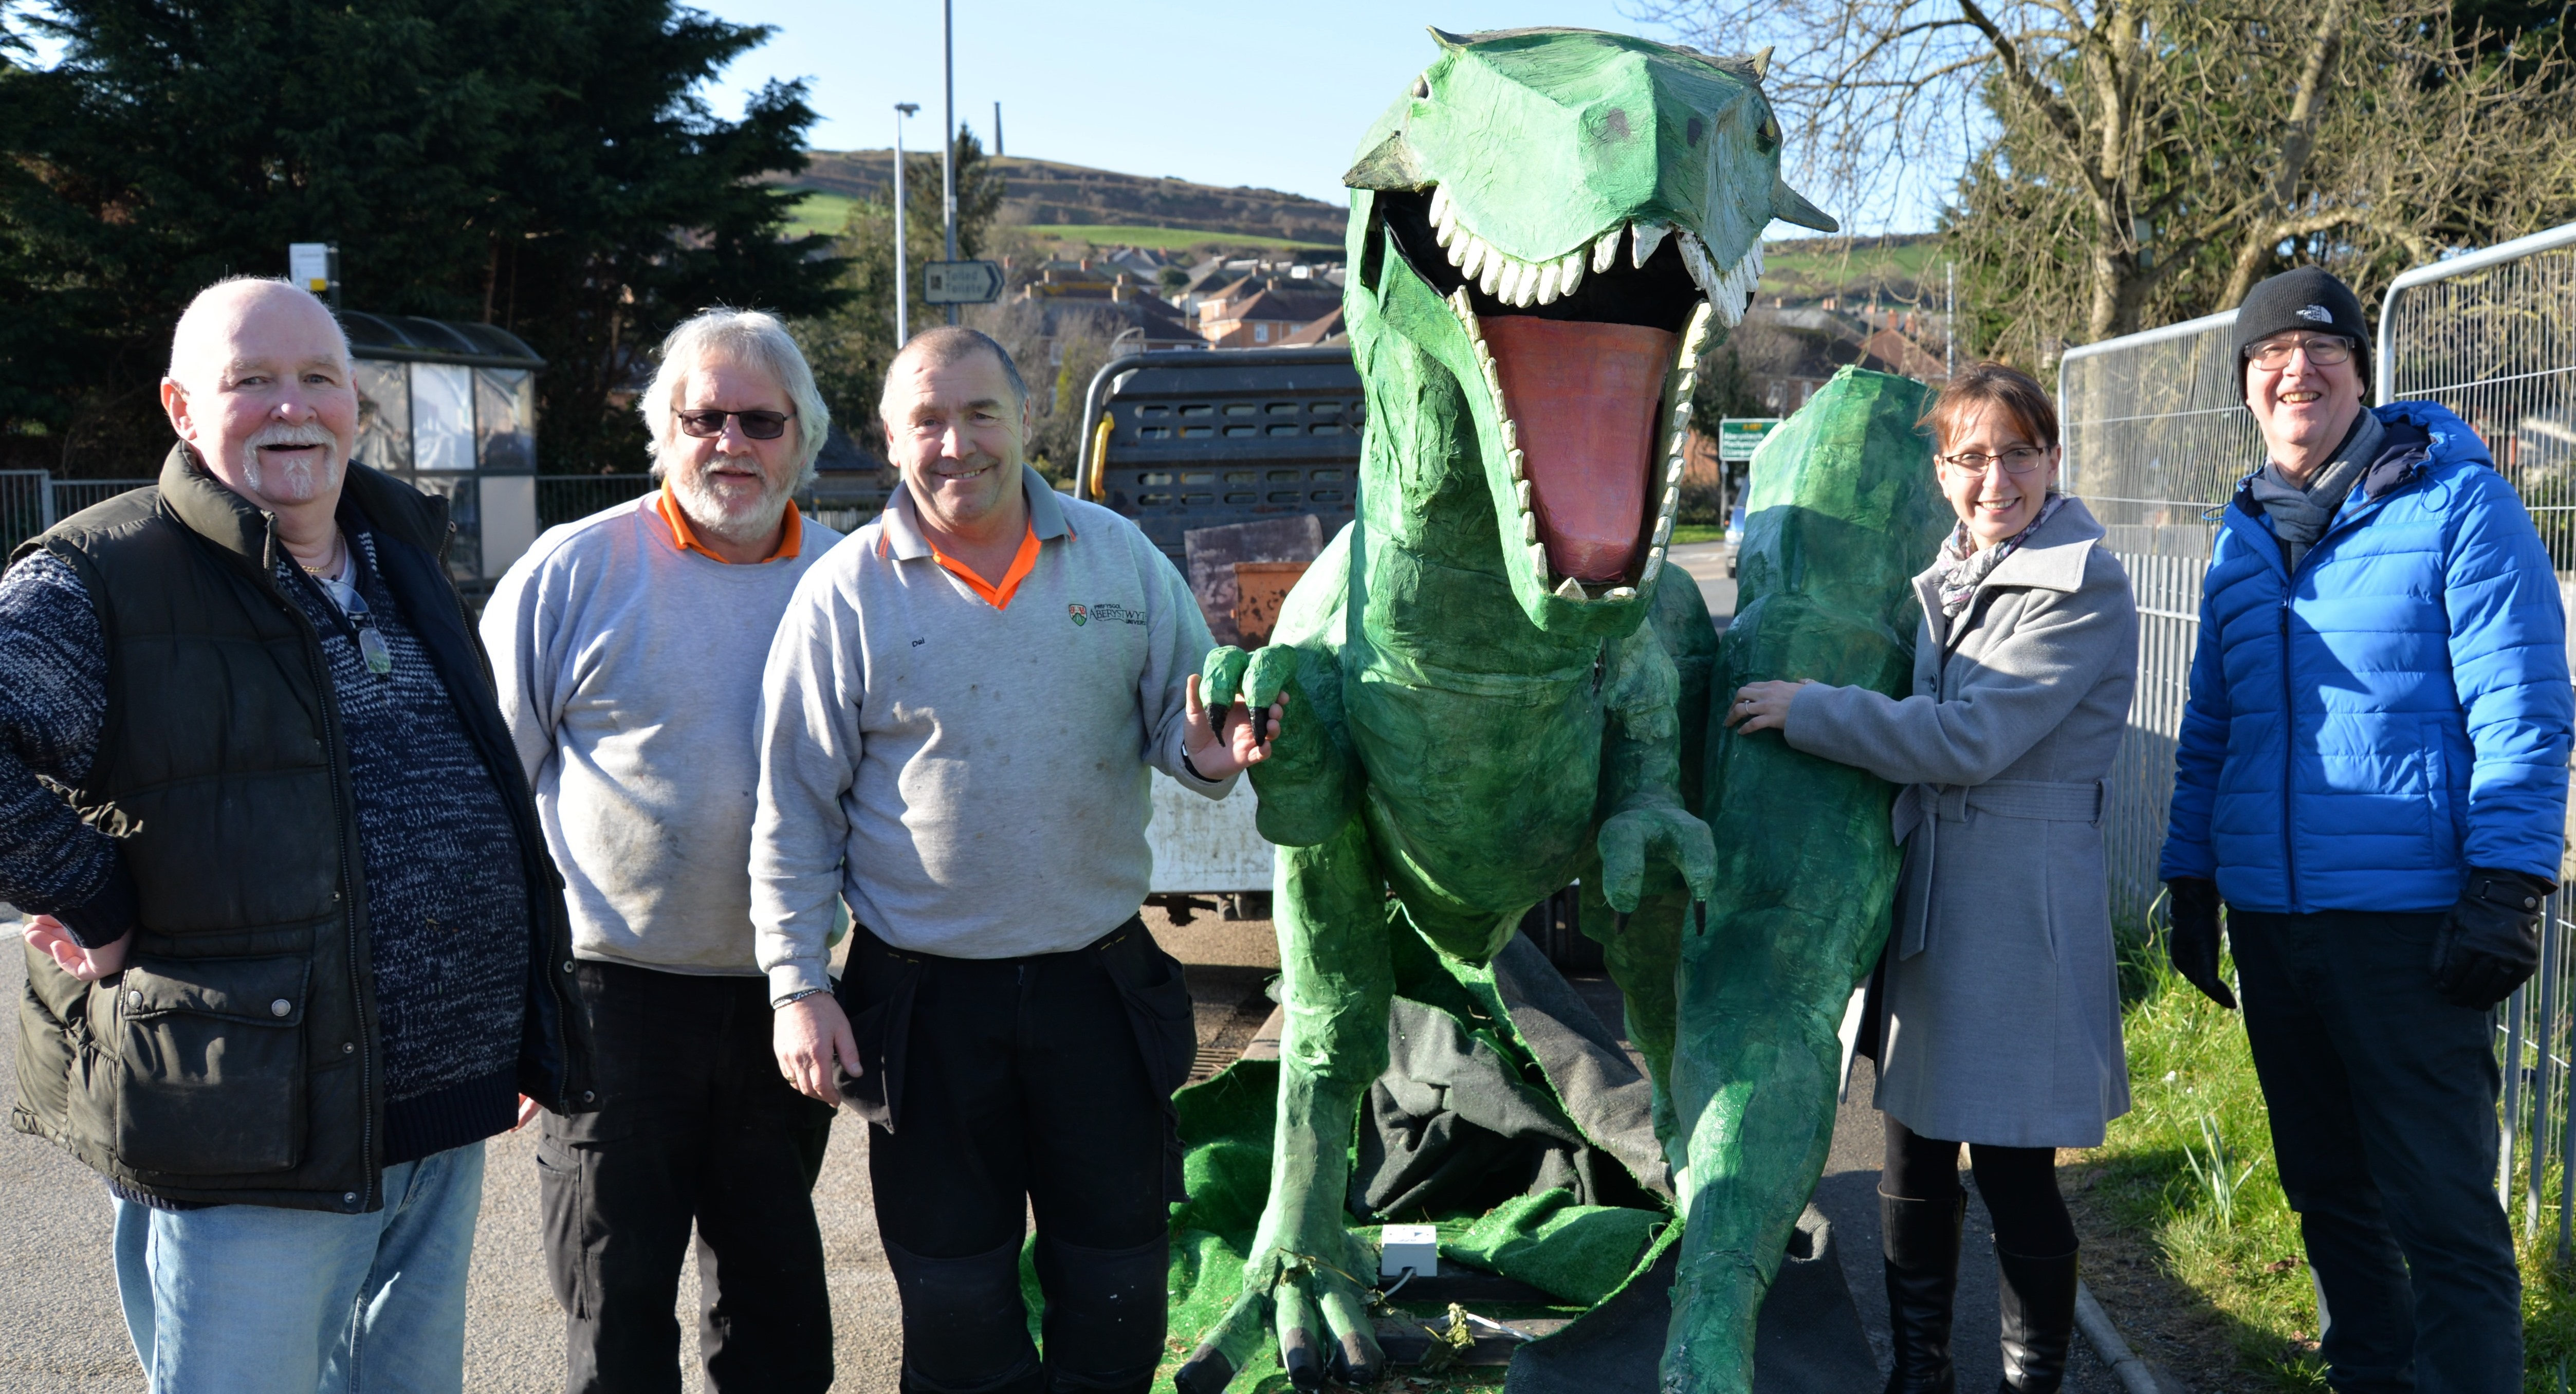 Dave the Dinosaur making his way from Penparcau Community Forum's offices to Old College accompanied by (left to right) George Barratt, Penparcau Forum, Jeff Dowse and Dai Gornall from Aberystwyth University's Property Services Team, Nia Davies, Aberystwyth University Old College Project and Bryn Jones, Penparcau Forum.